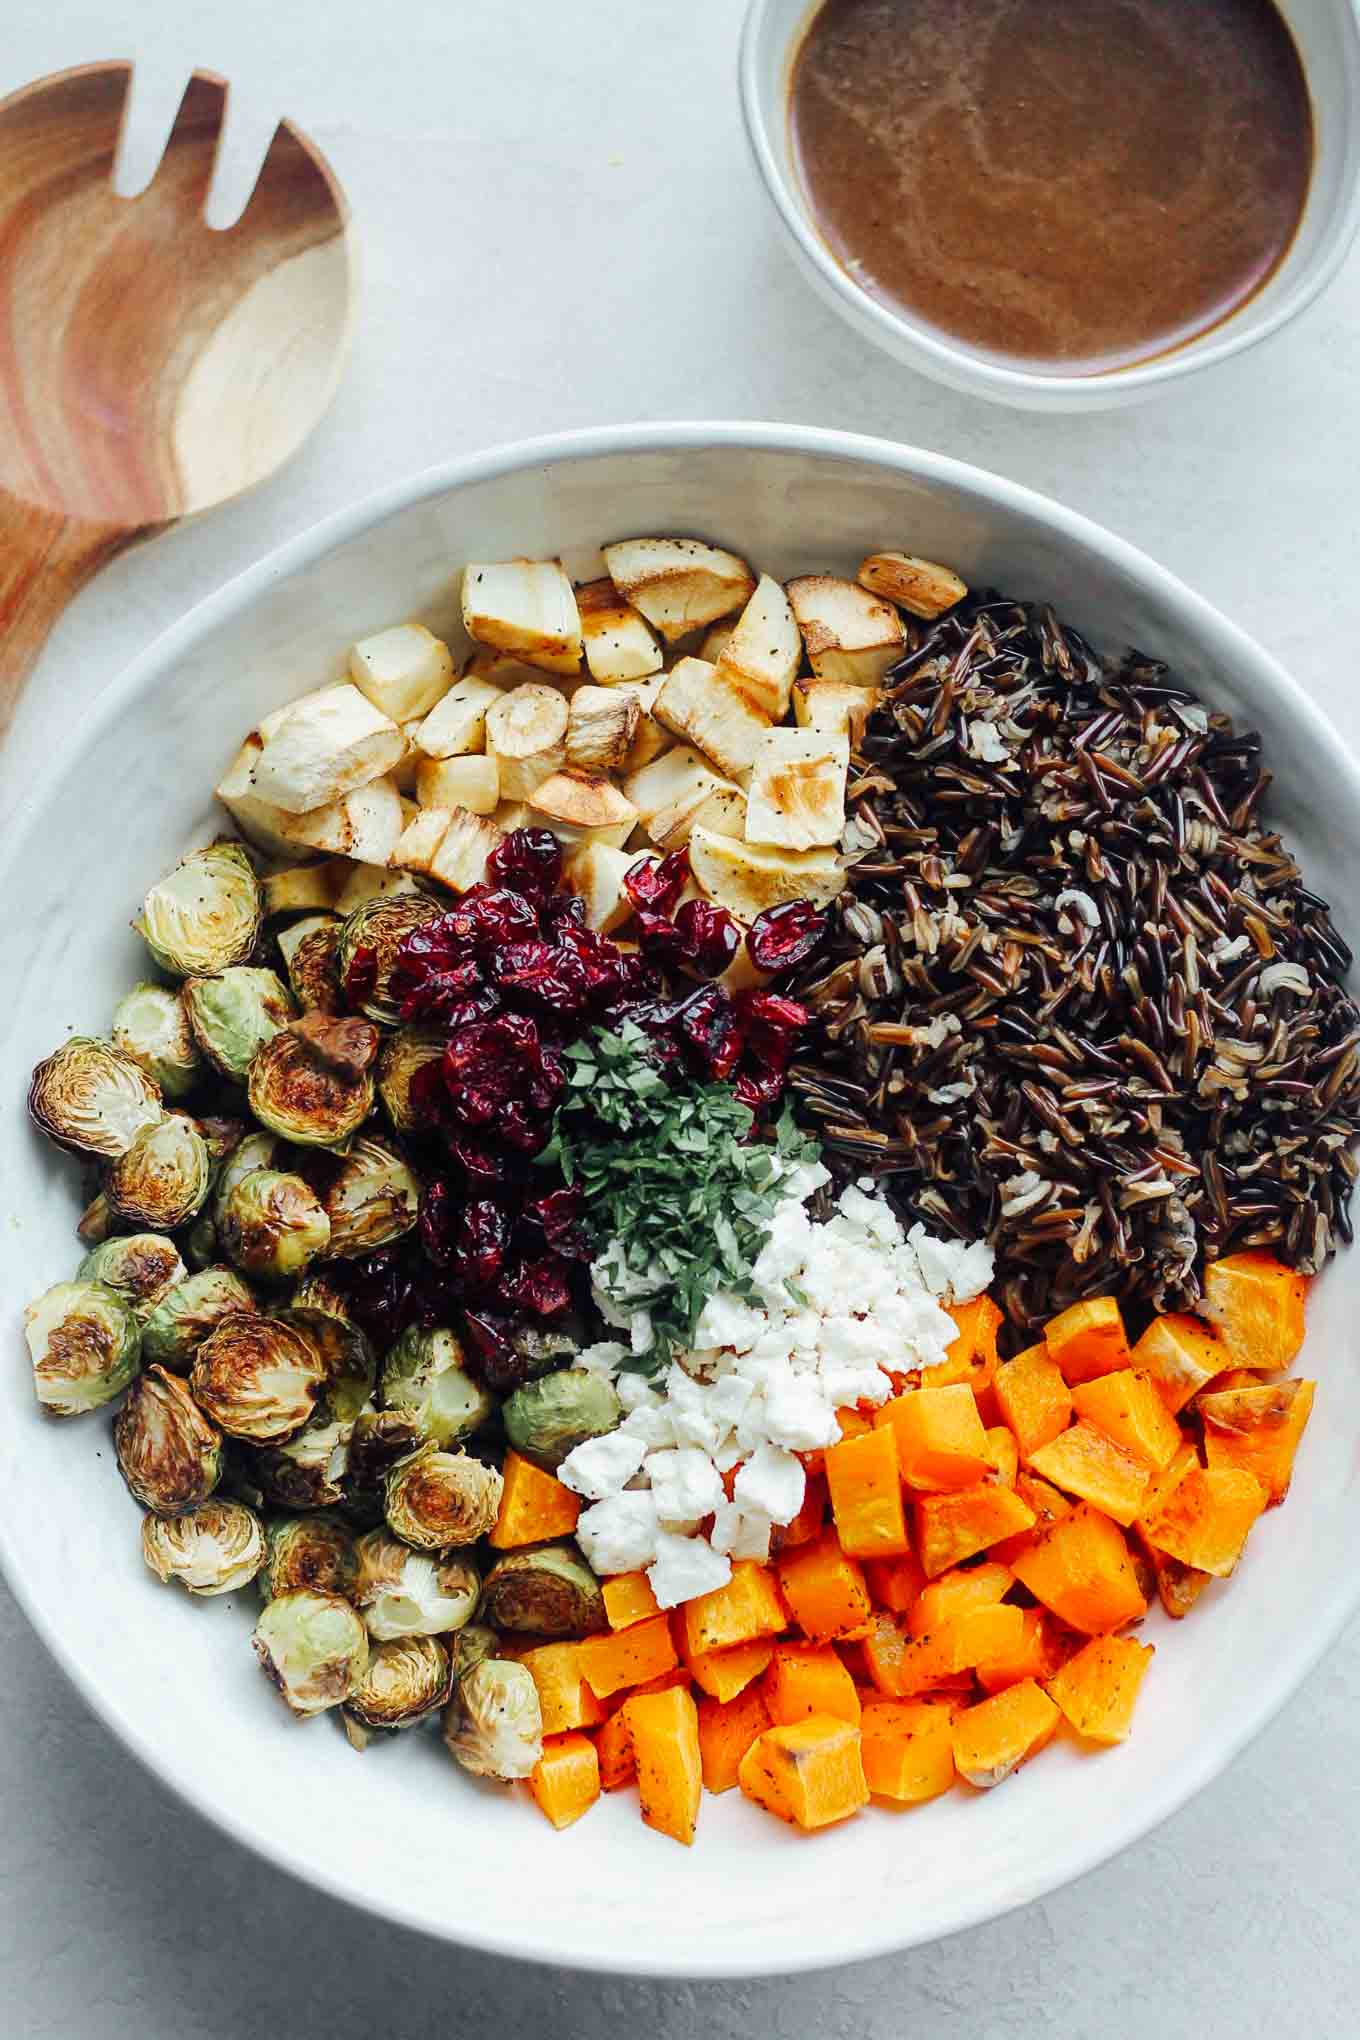 An overhead view of each ingredient in the bowl before tossing with dressing